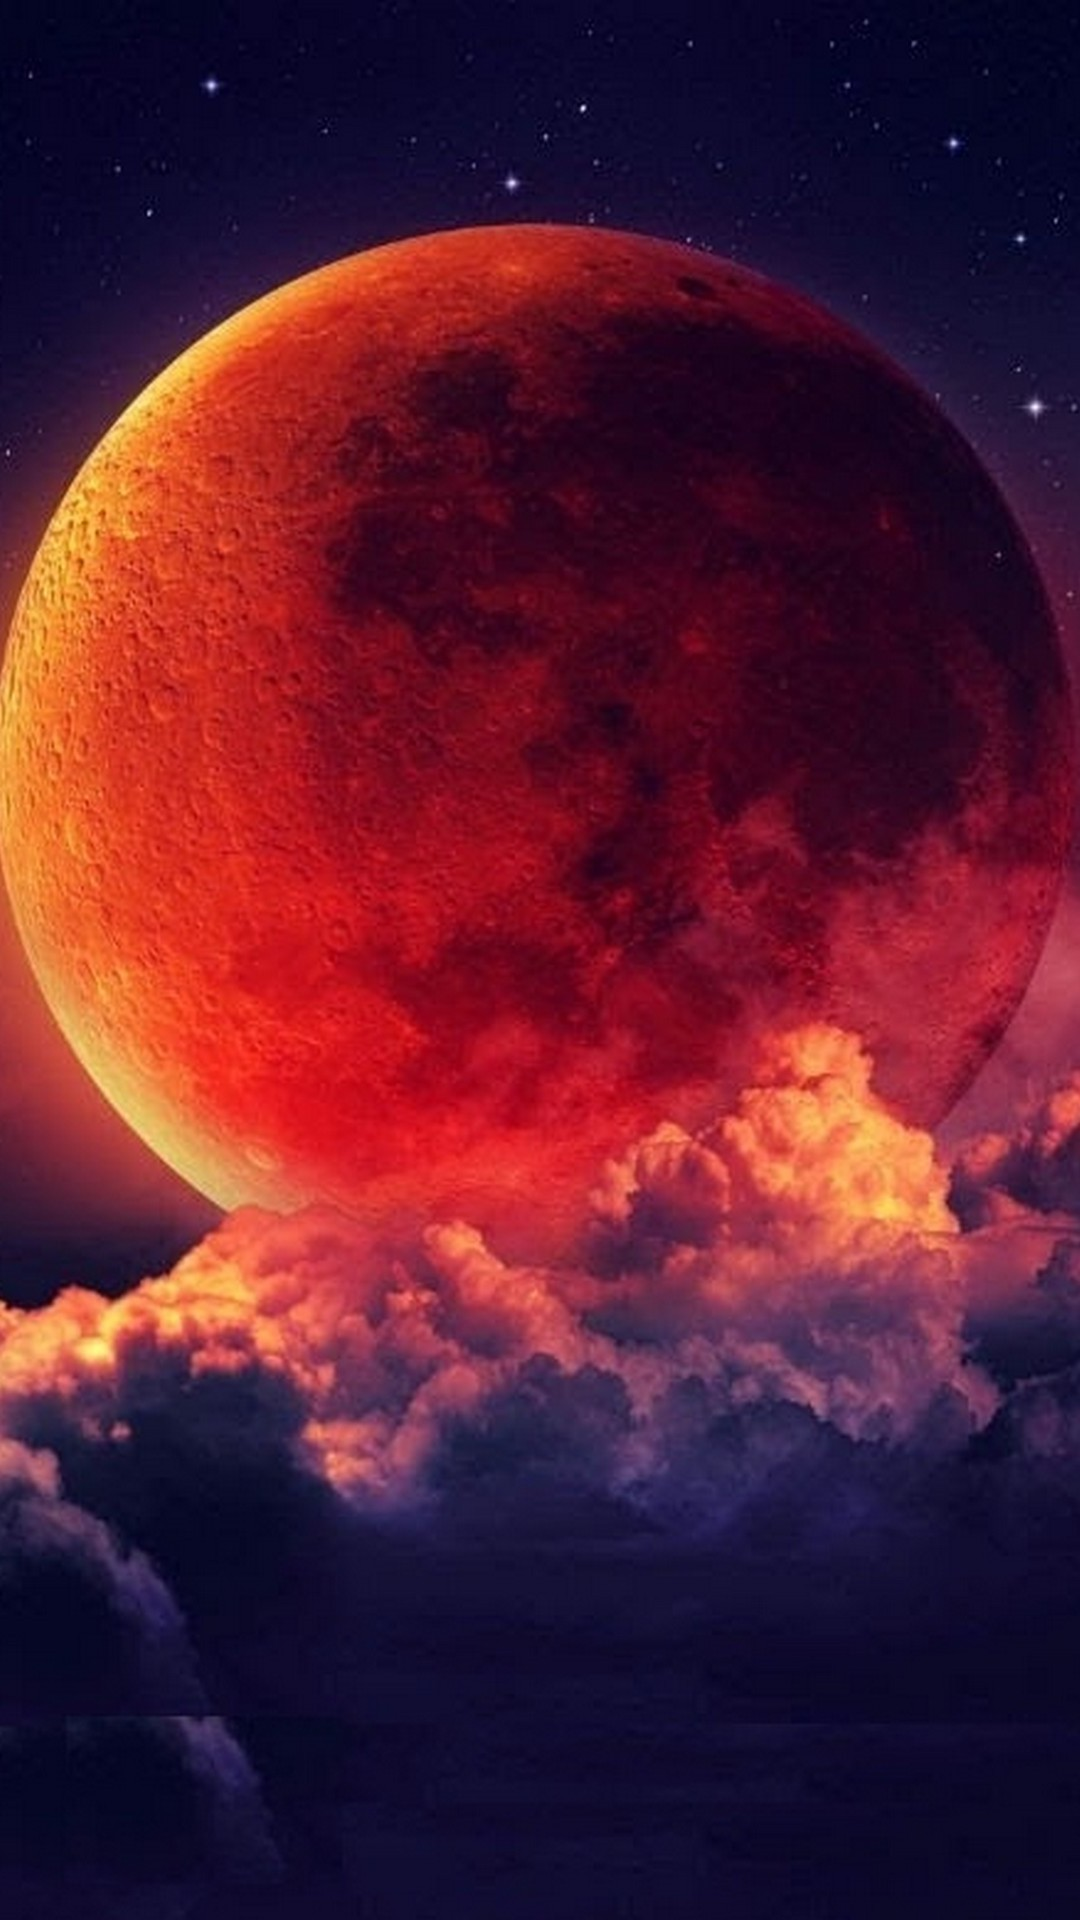 Blood Moon Wallpapers and HD Backgrounds free download on PicGaGa